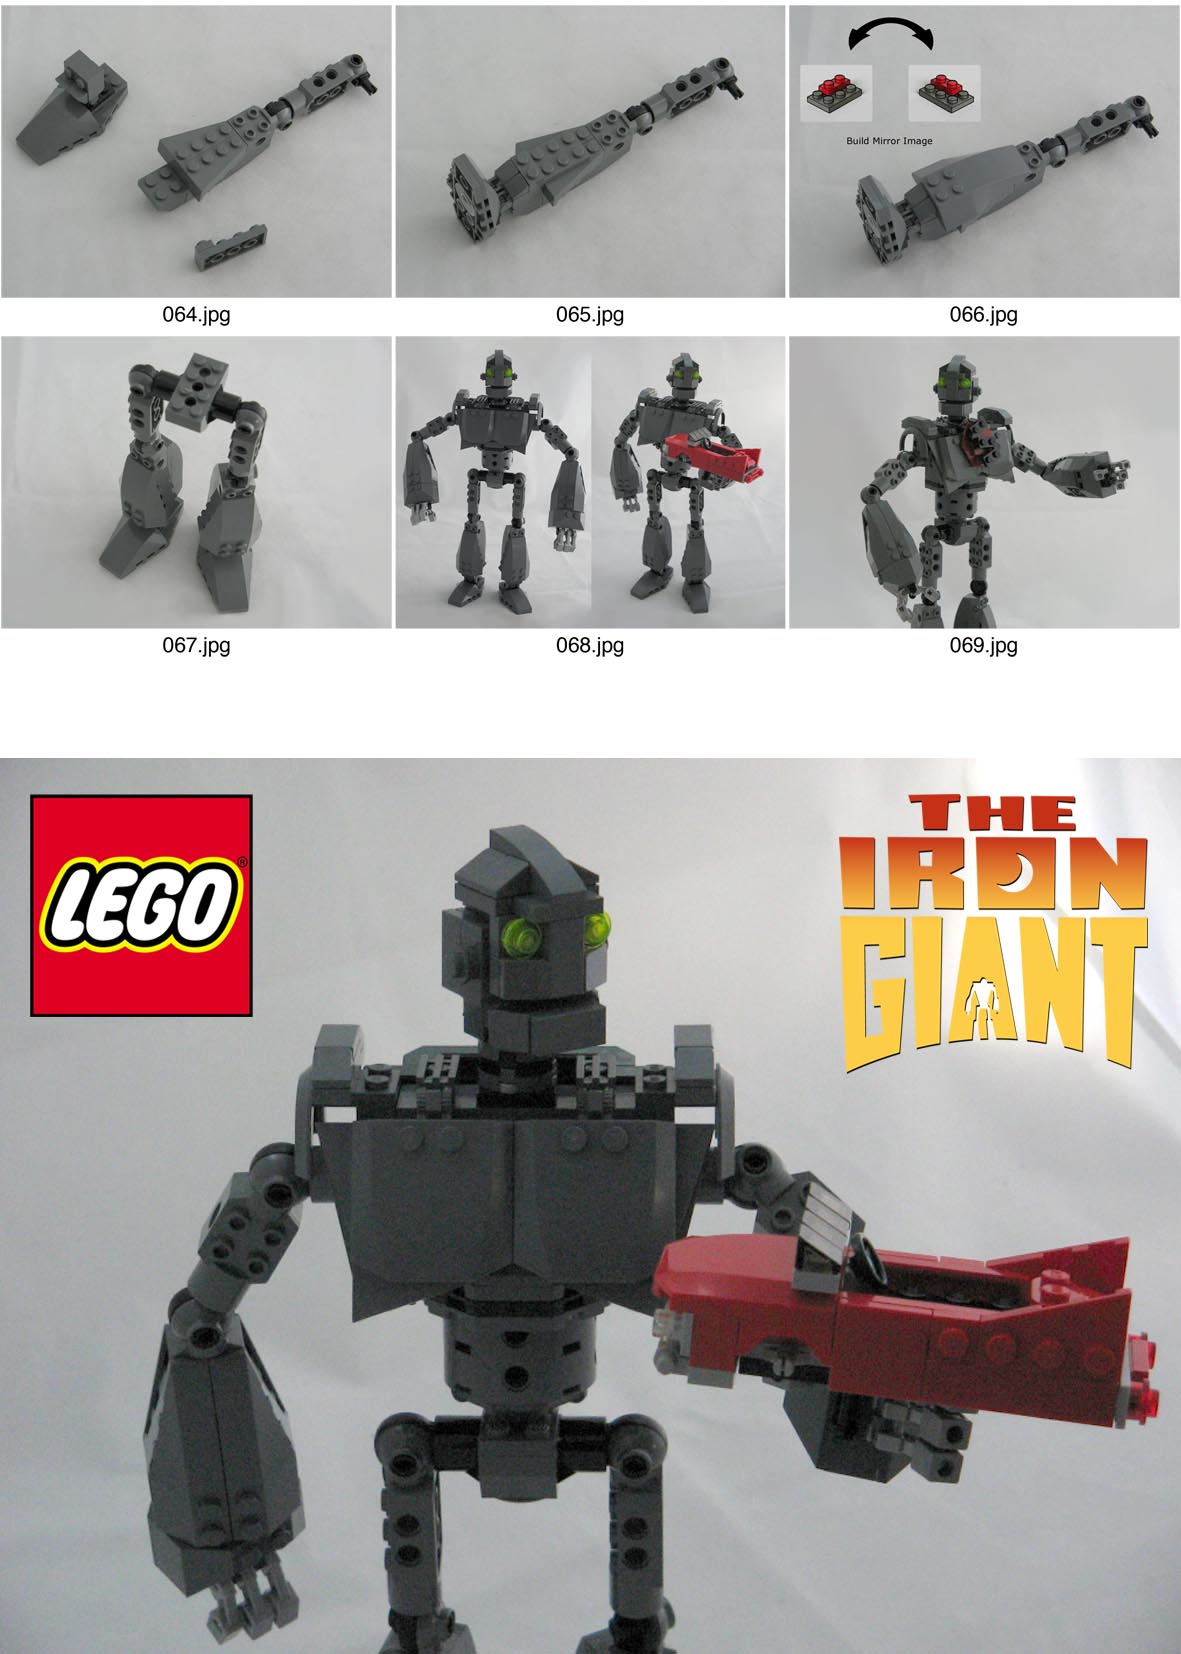 lego_iron_giant_v2_instructs_06.jpg